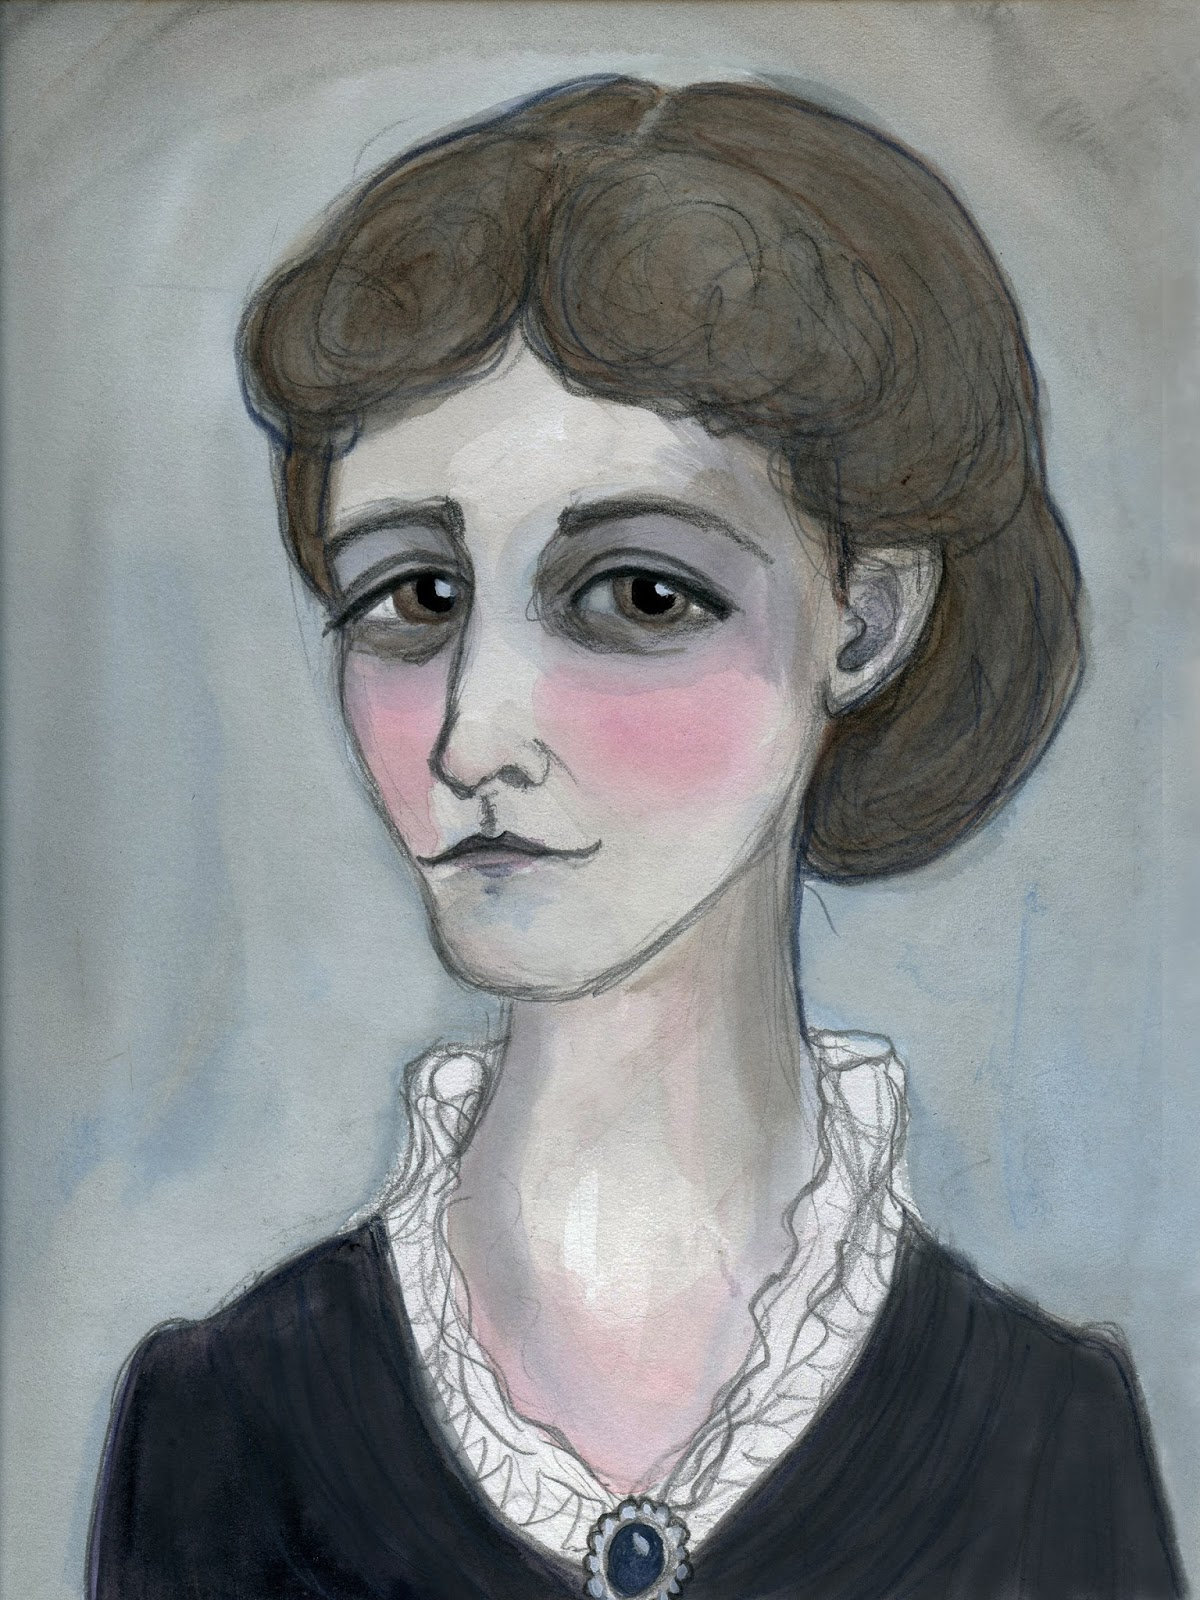 edith wharton Biographical information about edith wharton one of the major figures in  american literary history, edith wharton (1862-1937) presented intriguing  insights into.